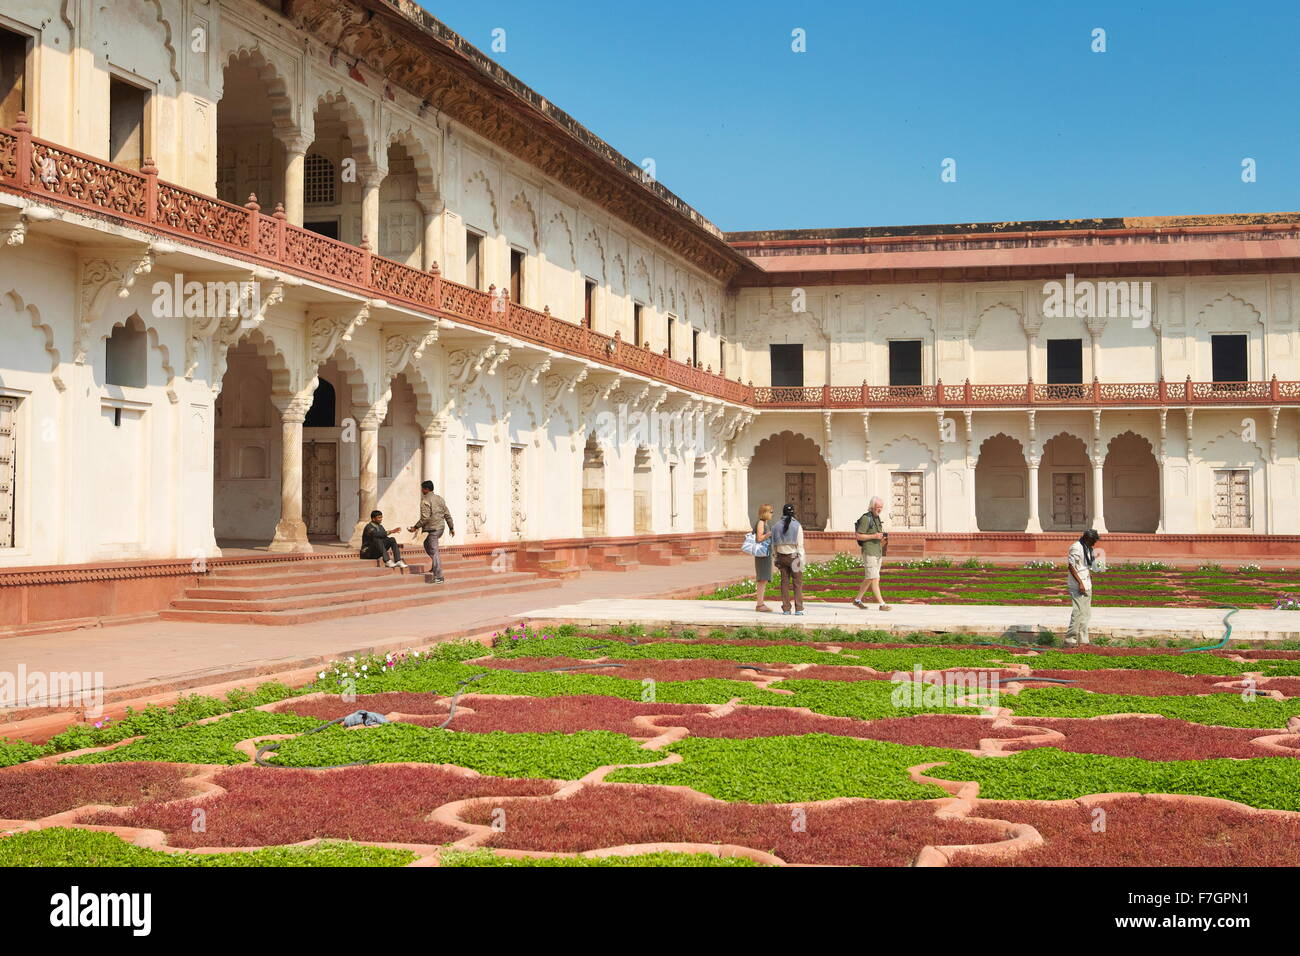 Red Fort, Agra - Anguri Bagh gardens, Agra, India - Stock Image